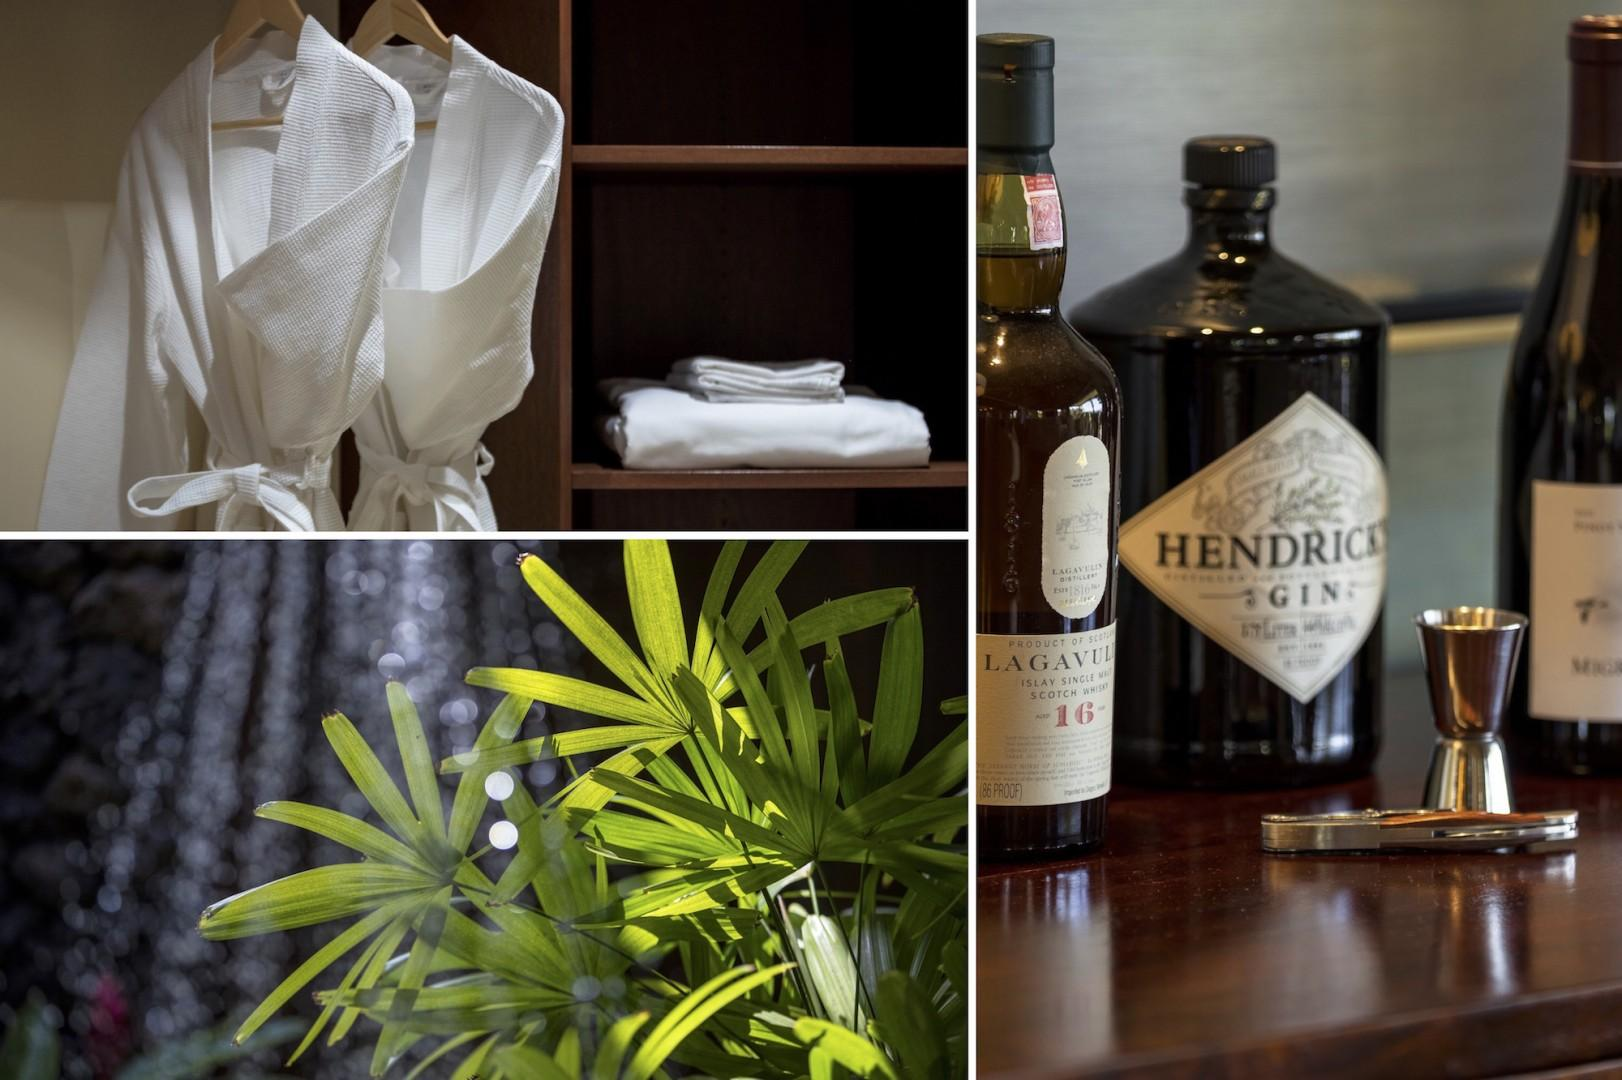 Indulge yourself in paradise with robes included for your comfort, a topical outdoor shower garden, and libations of your choosing.